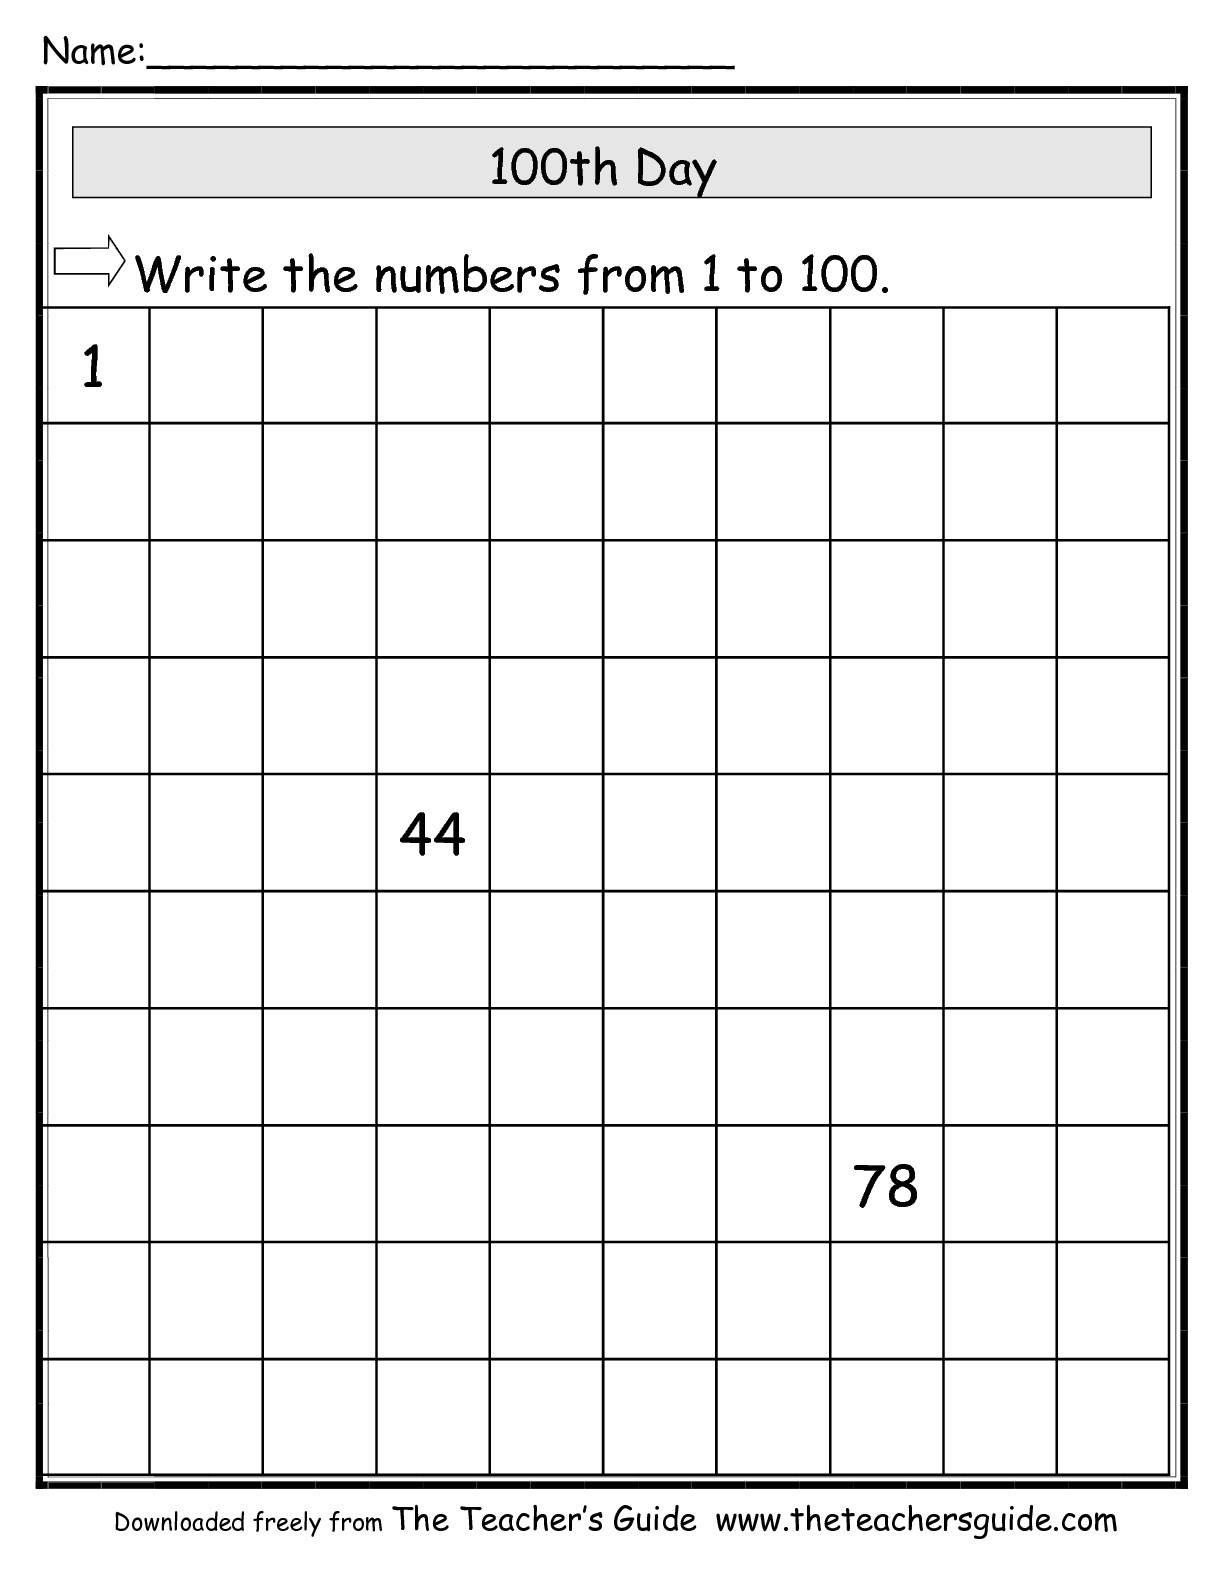 15 Best Images Of Fill Missing Number Worksheets